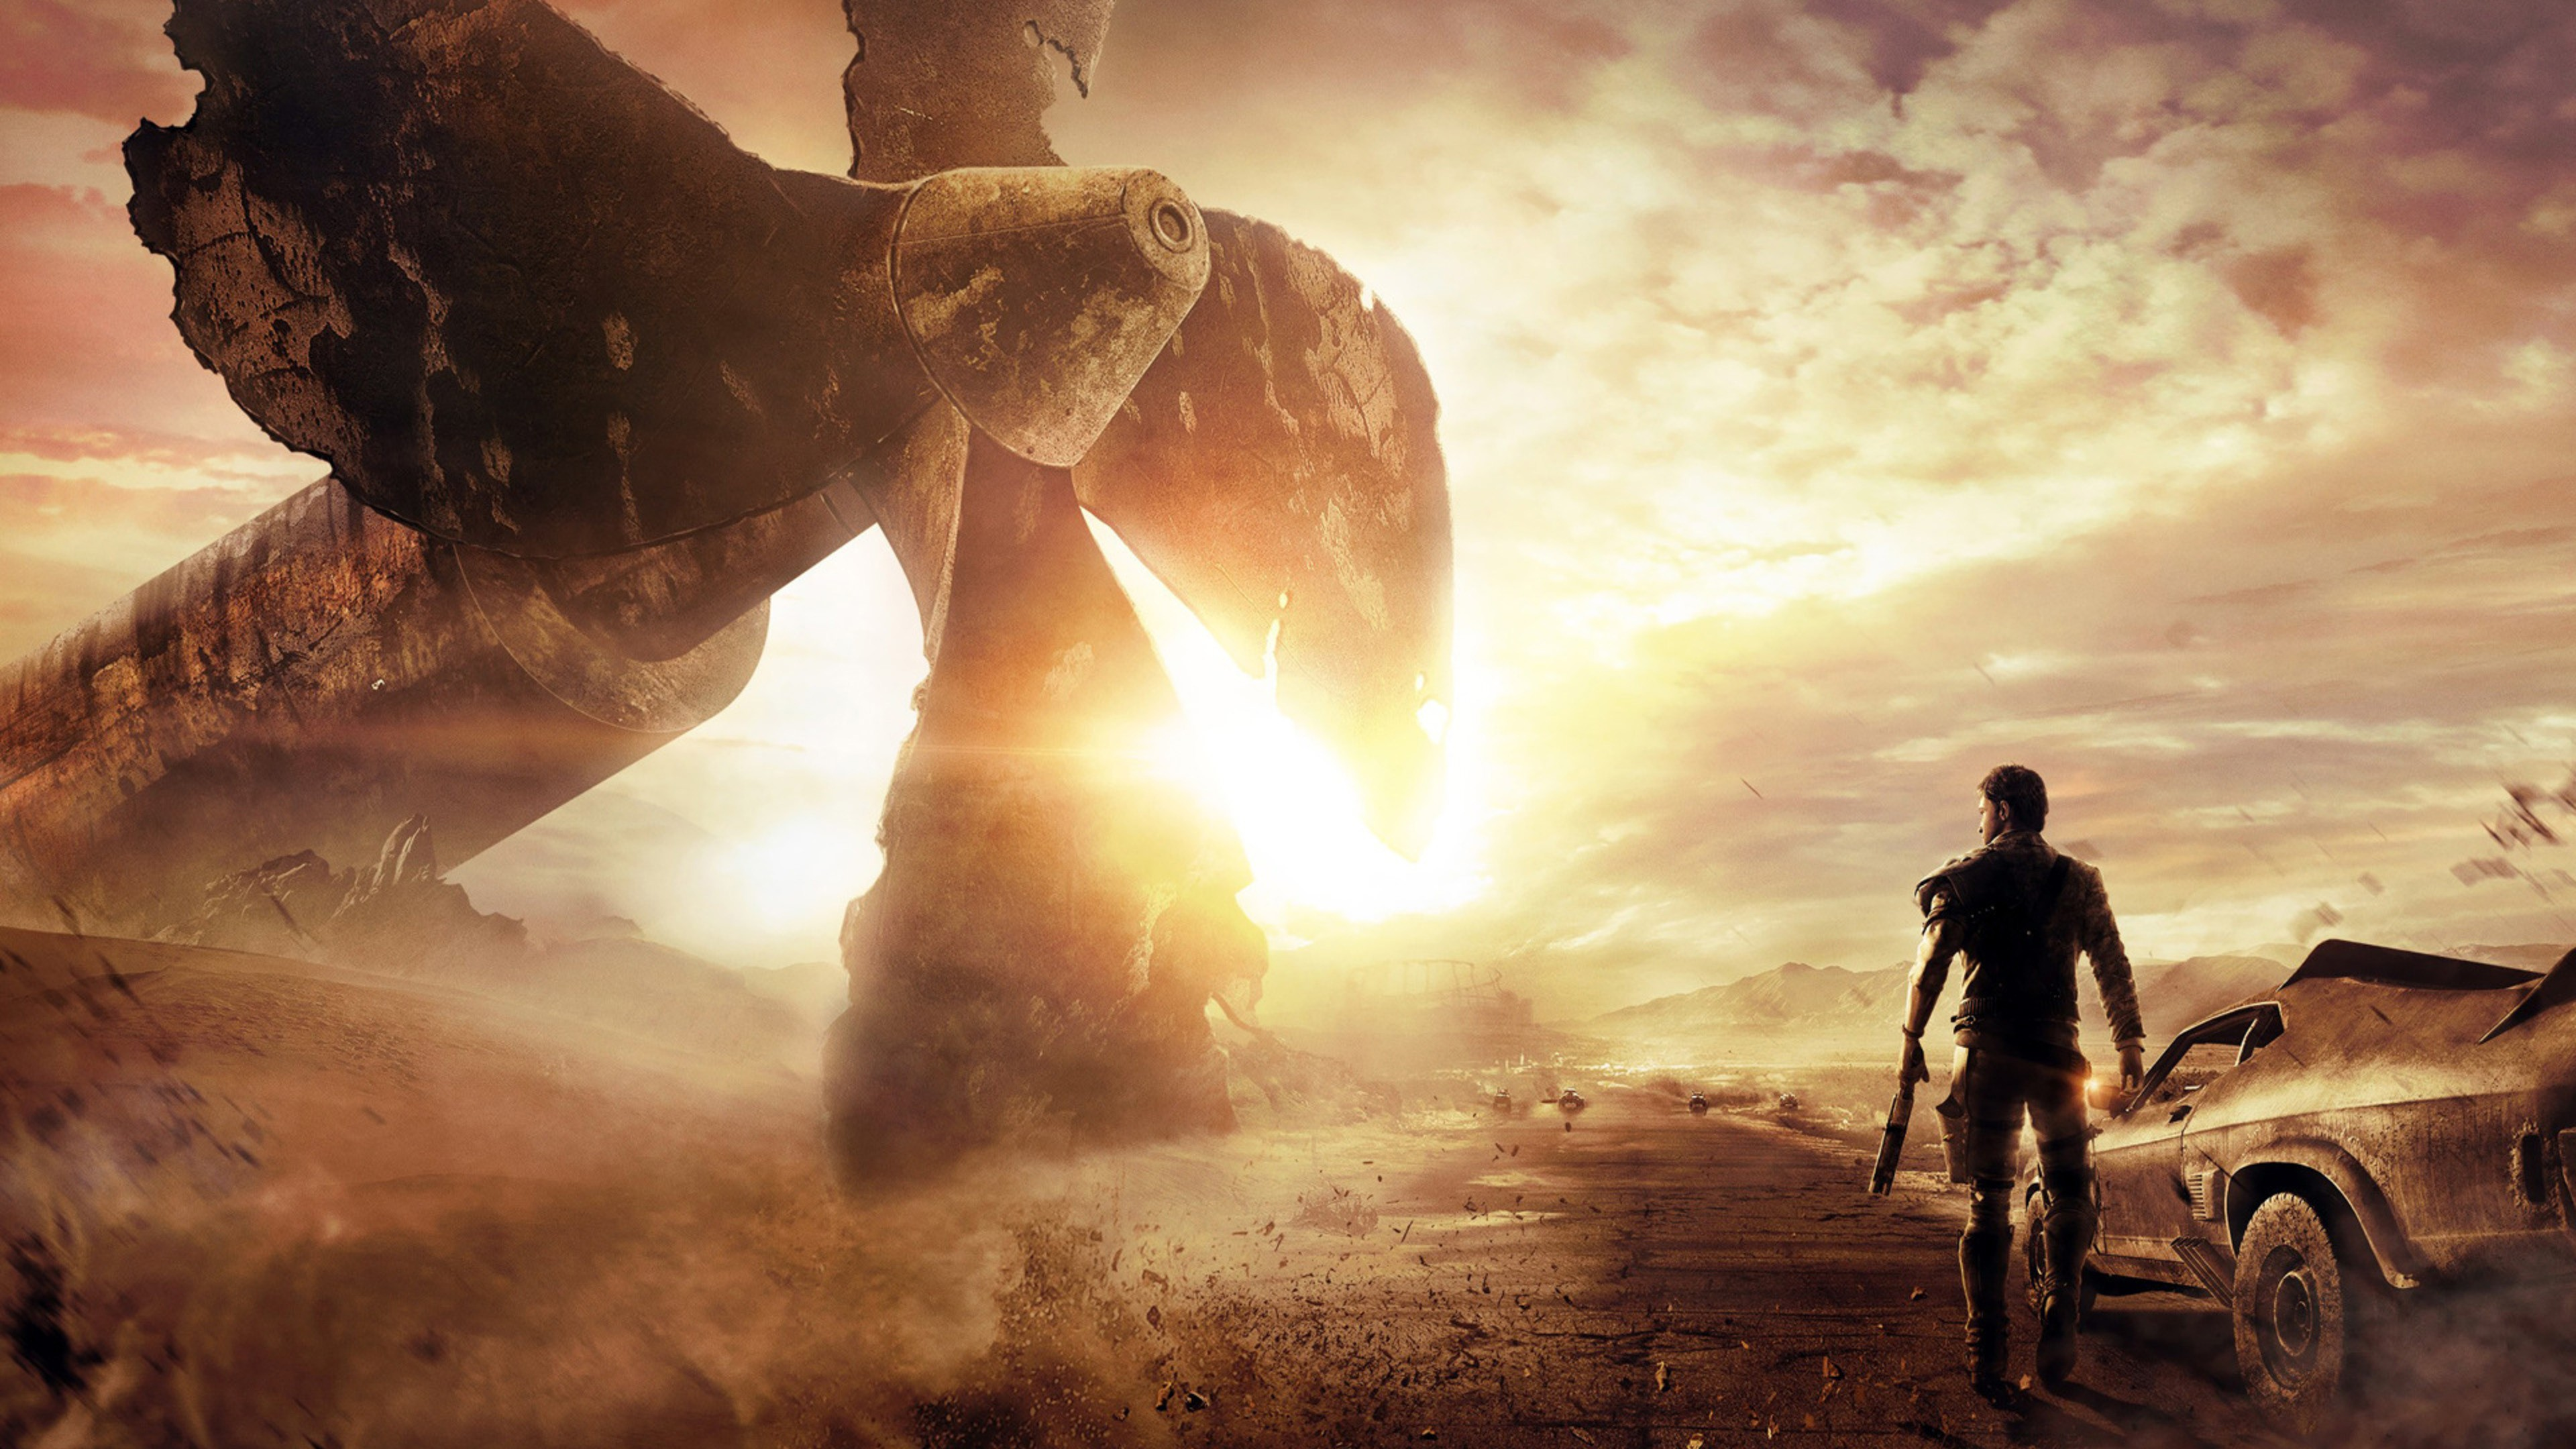 Wallpaper mad max best games 2015 game shooter pc ps4 - Best wallpaper for pc gaming ...